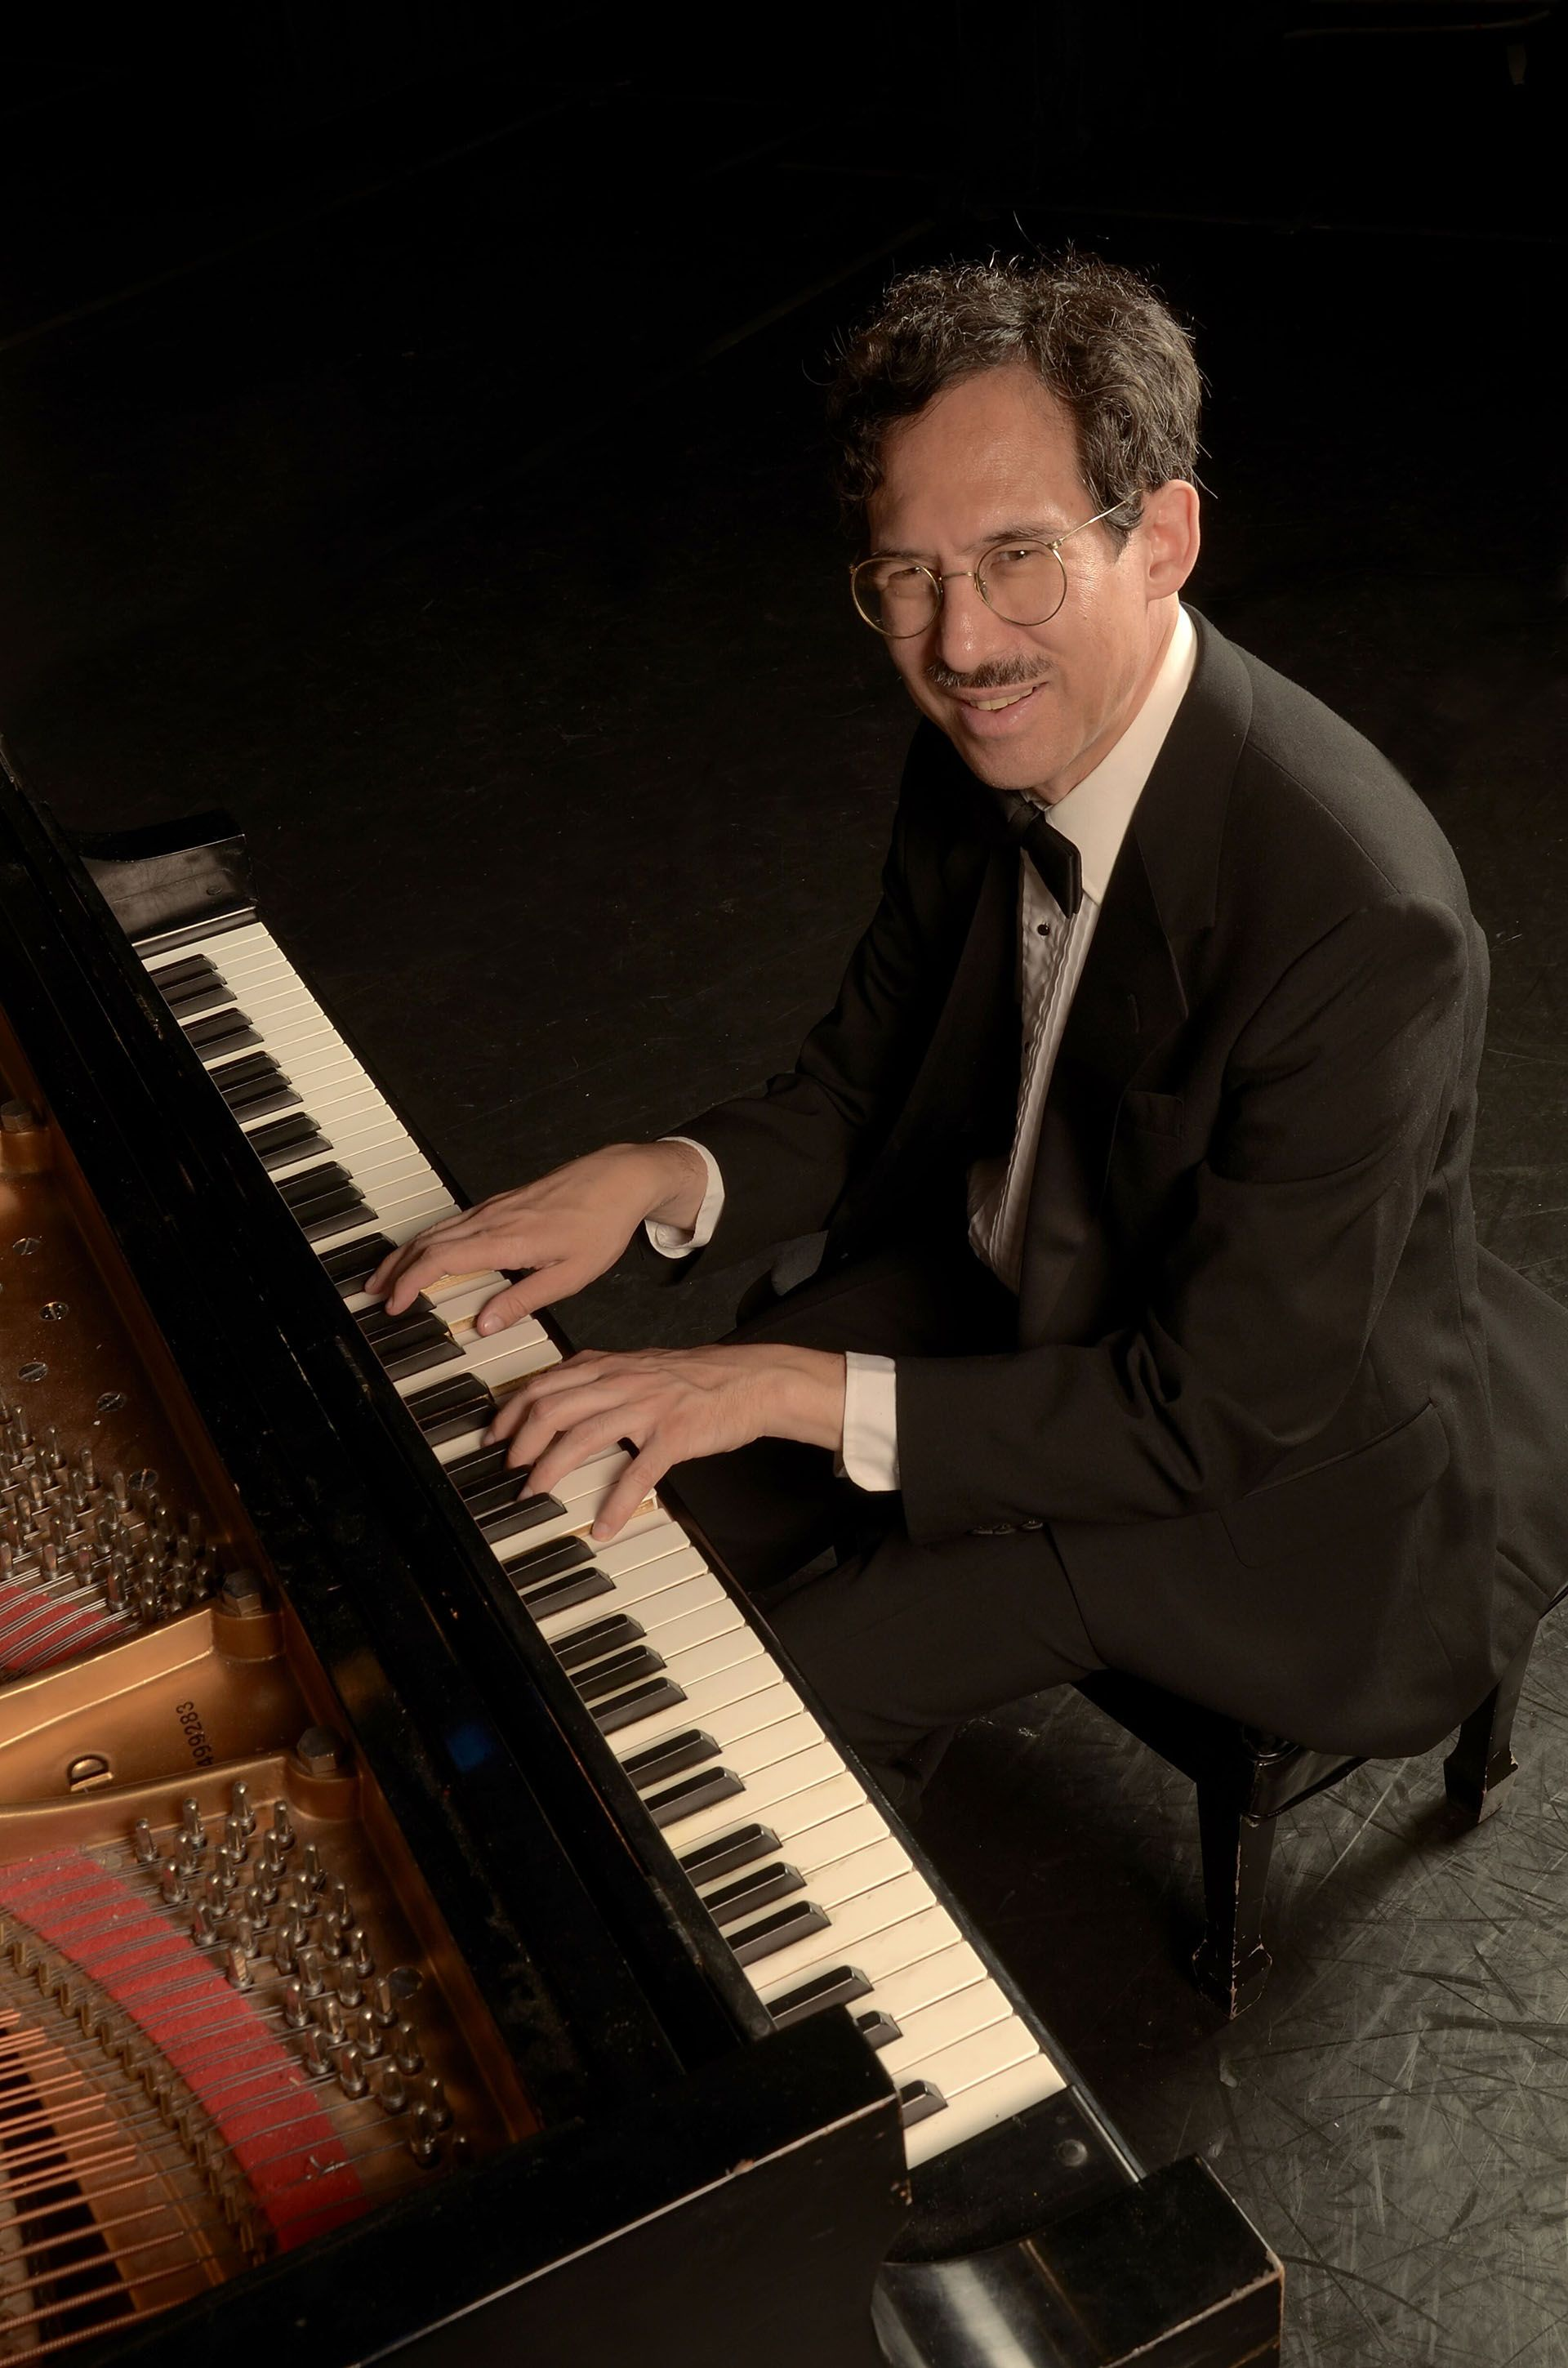 Michael Arnowitt wearing a tux and smiling while playing grand piano.